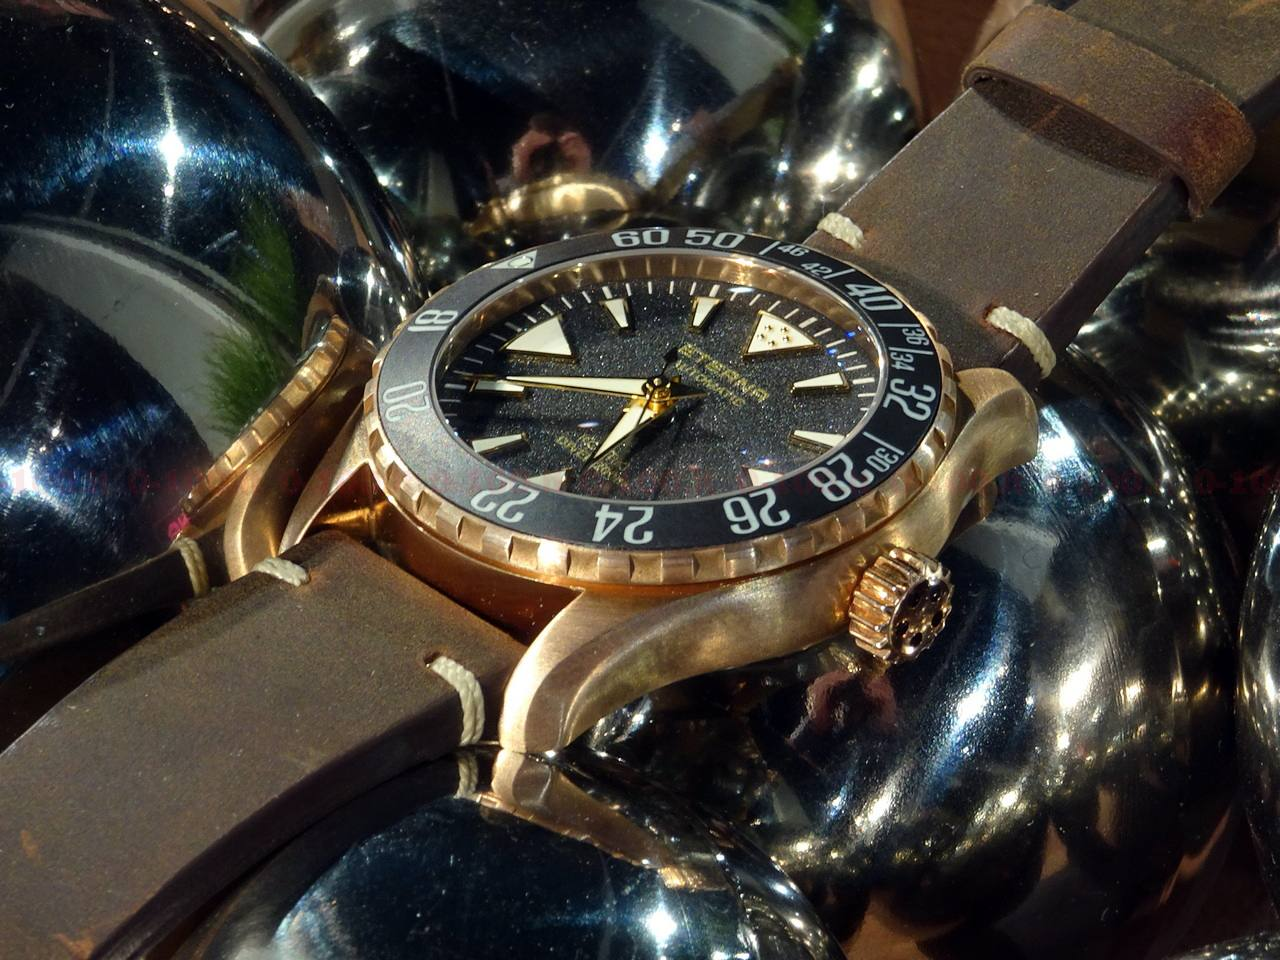 baselworld-2017-ETERNA KONTIKI BRONZE MANUFACTURE LIMITED EDITION REF. 1291.78.49.1422-prezzo-price_0-1004